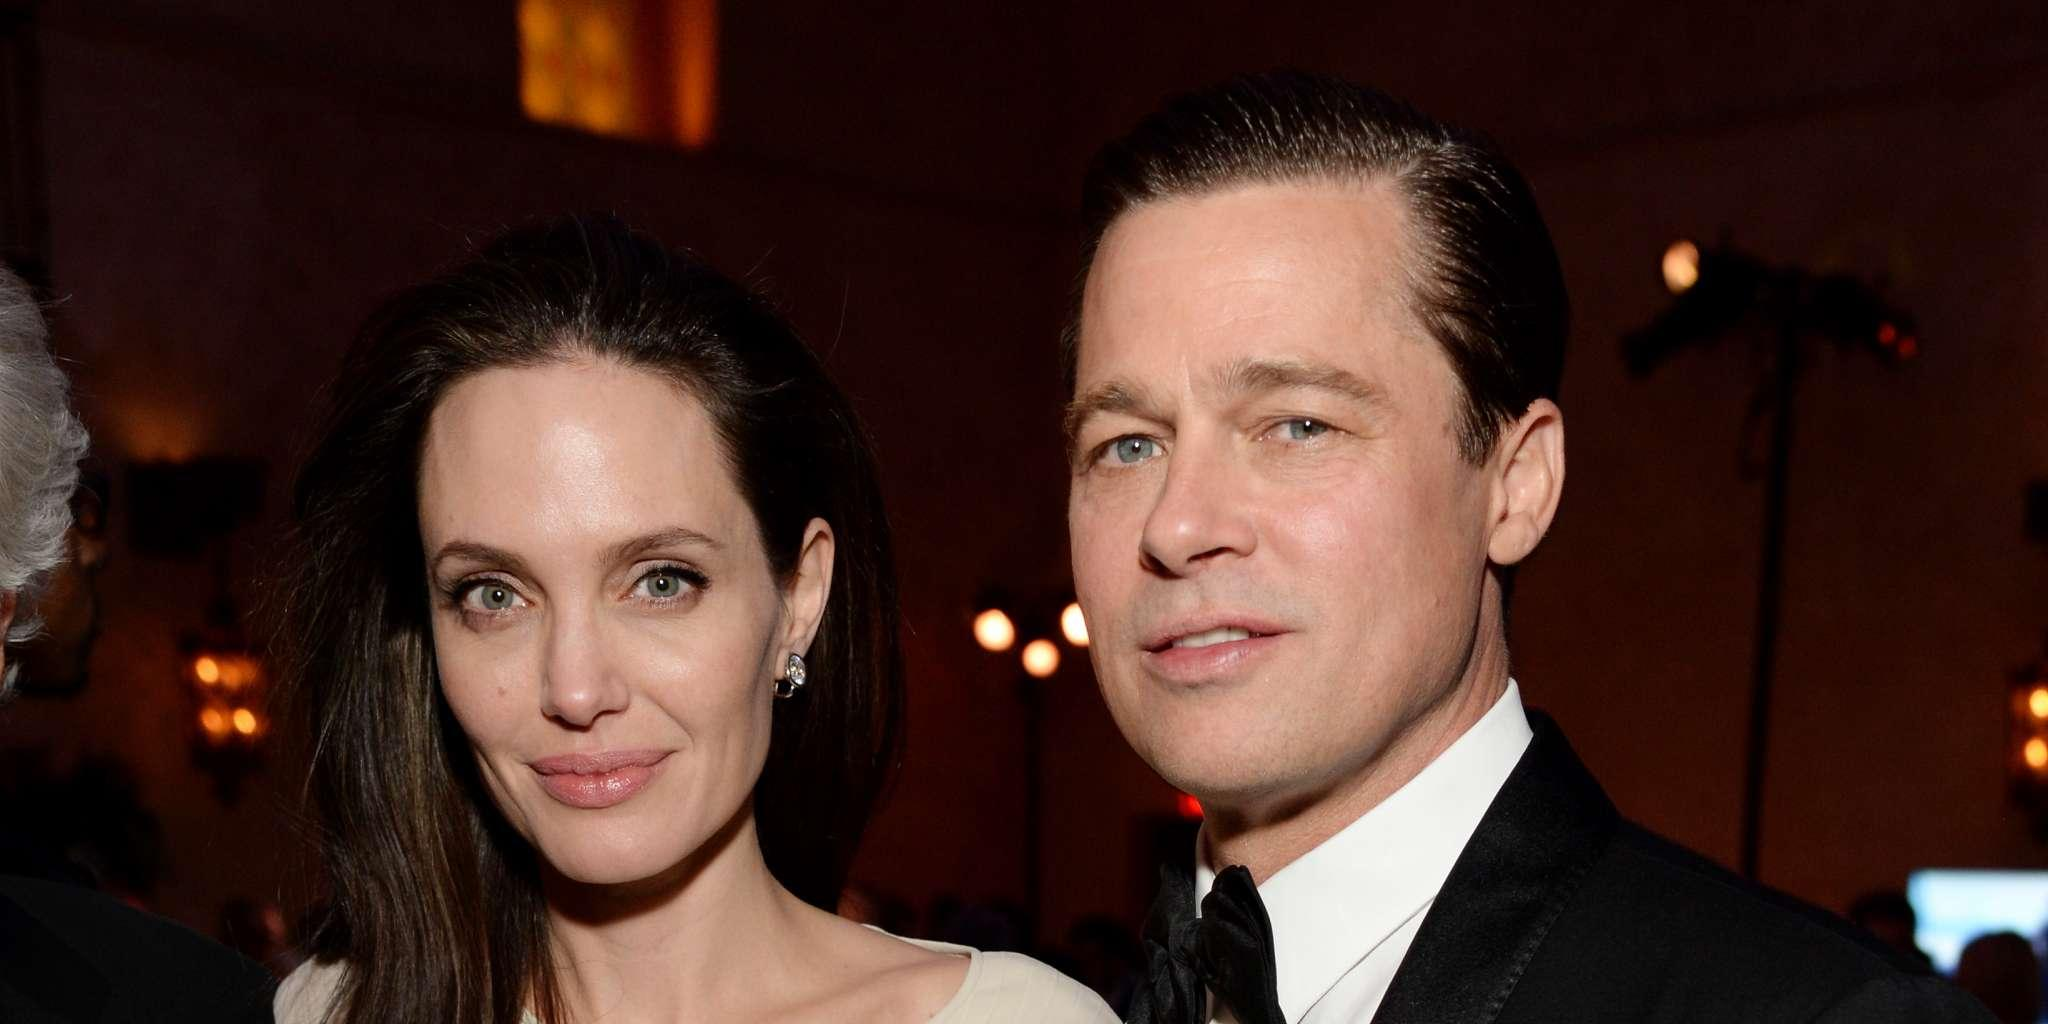 Brad Pitt And Angelina Jolie - Here's What They Talked About During First Public Meeting Since Divorce!